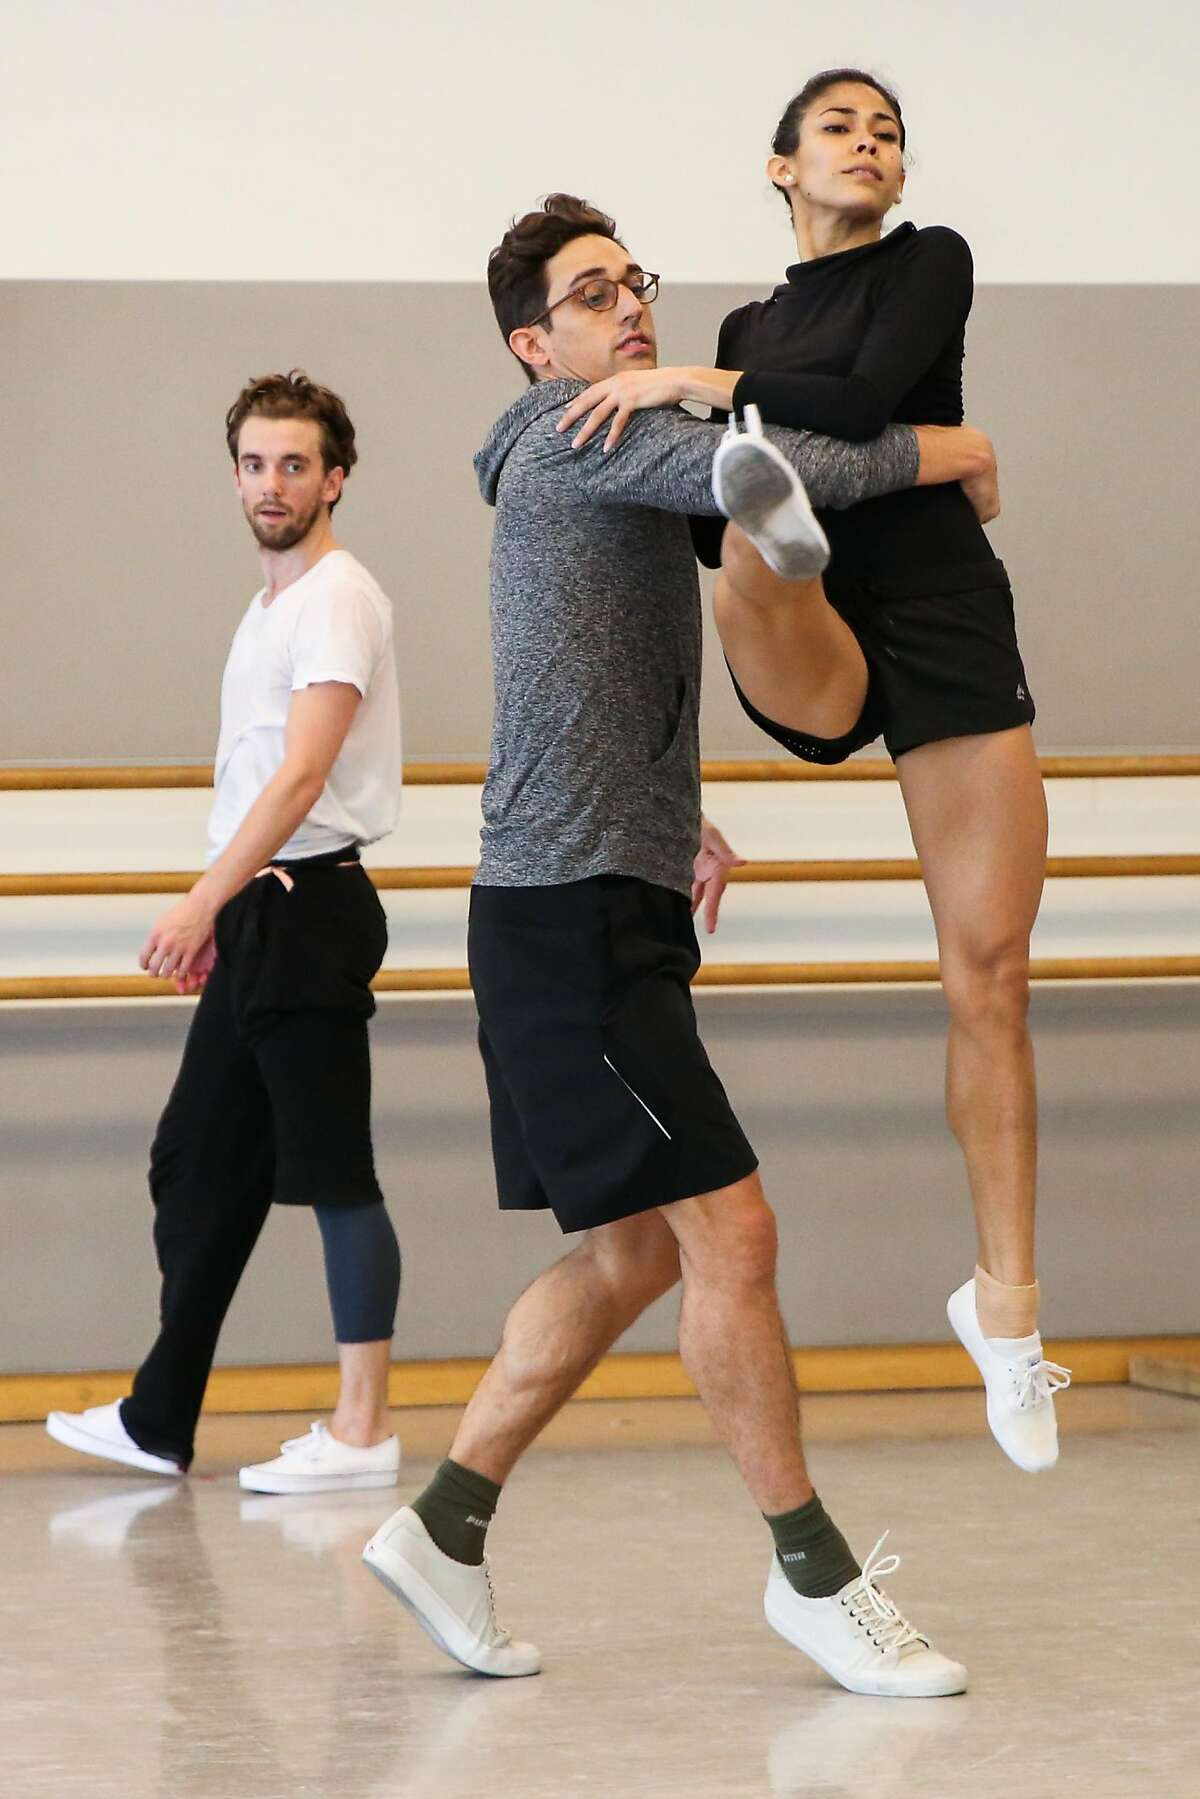 Choreographer Justin Peck (center) guides dancer Gabriela Gonzalez (right) during rehearsals at the San Francisco Ballet in San Francisco, Calif., on Wednesday, Aug. 16, 2017.